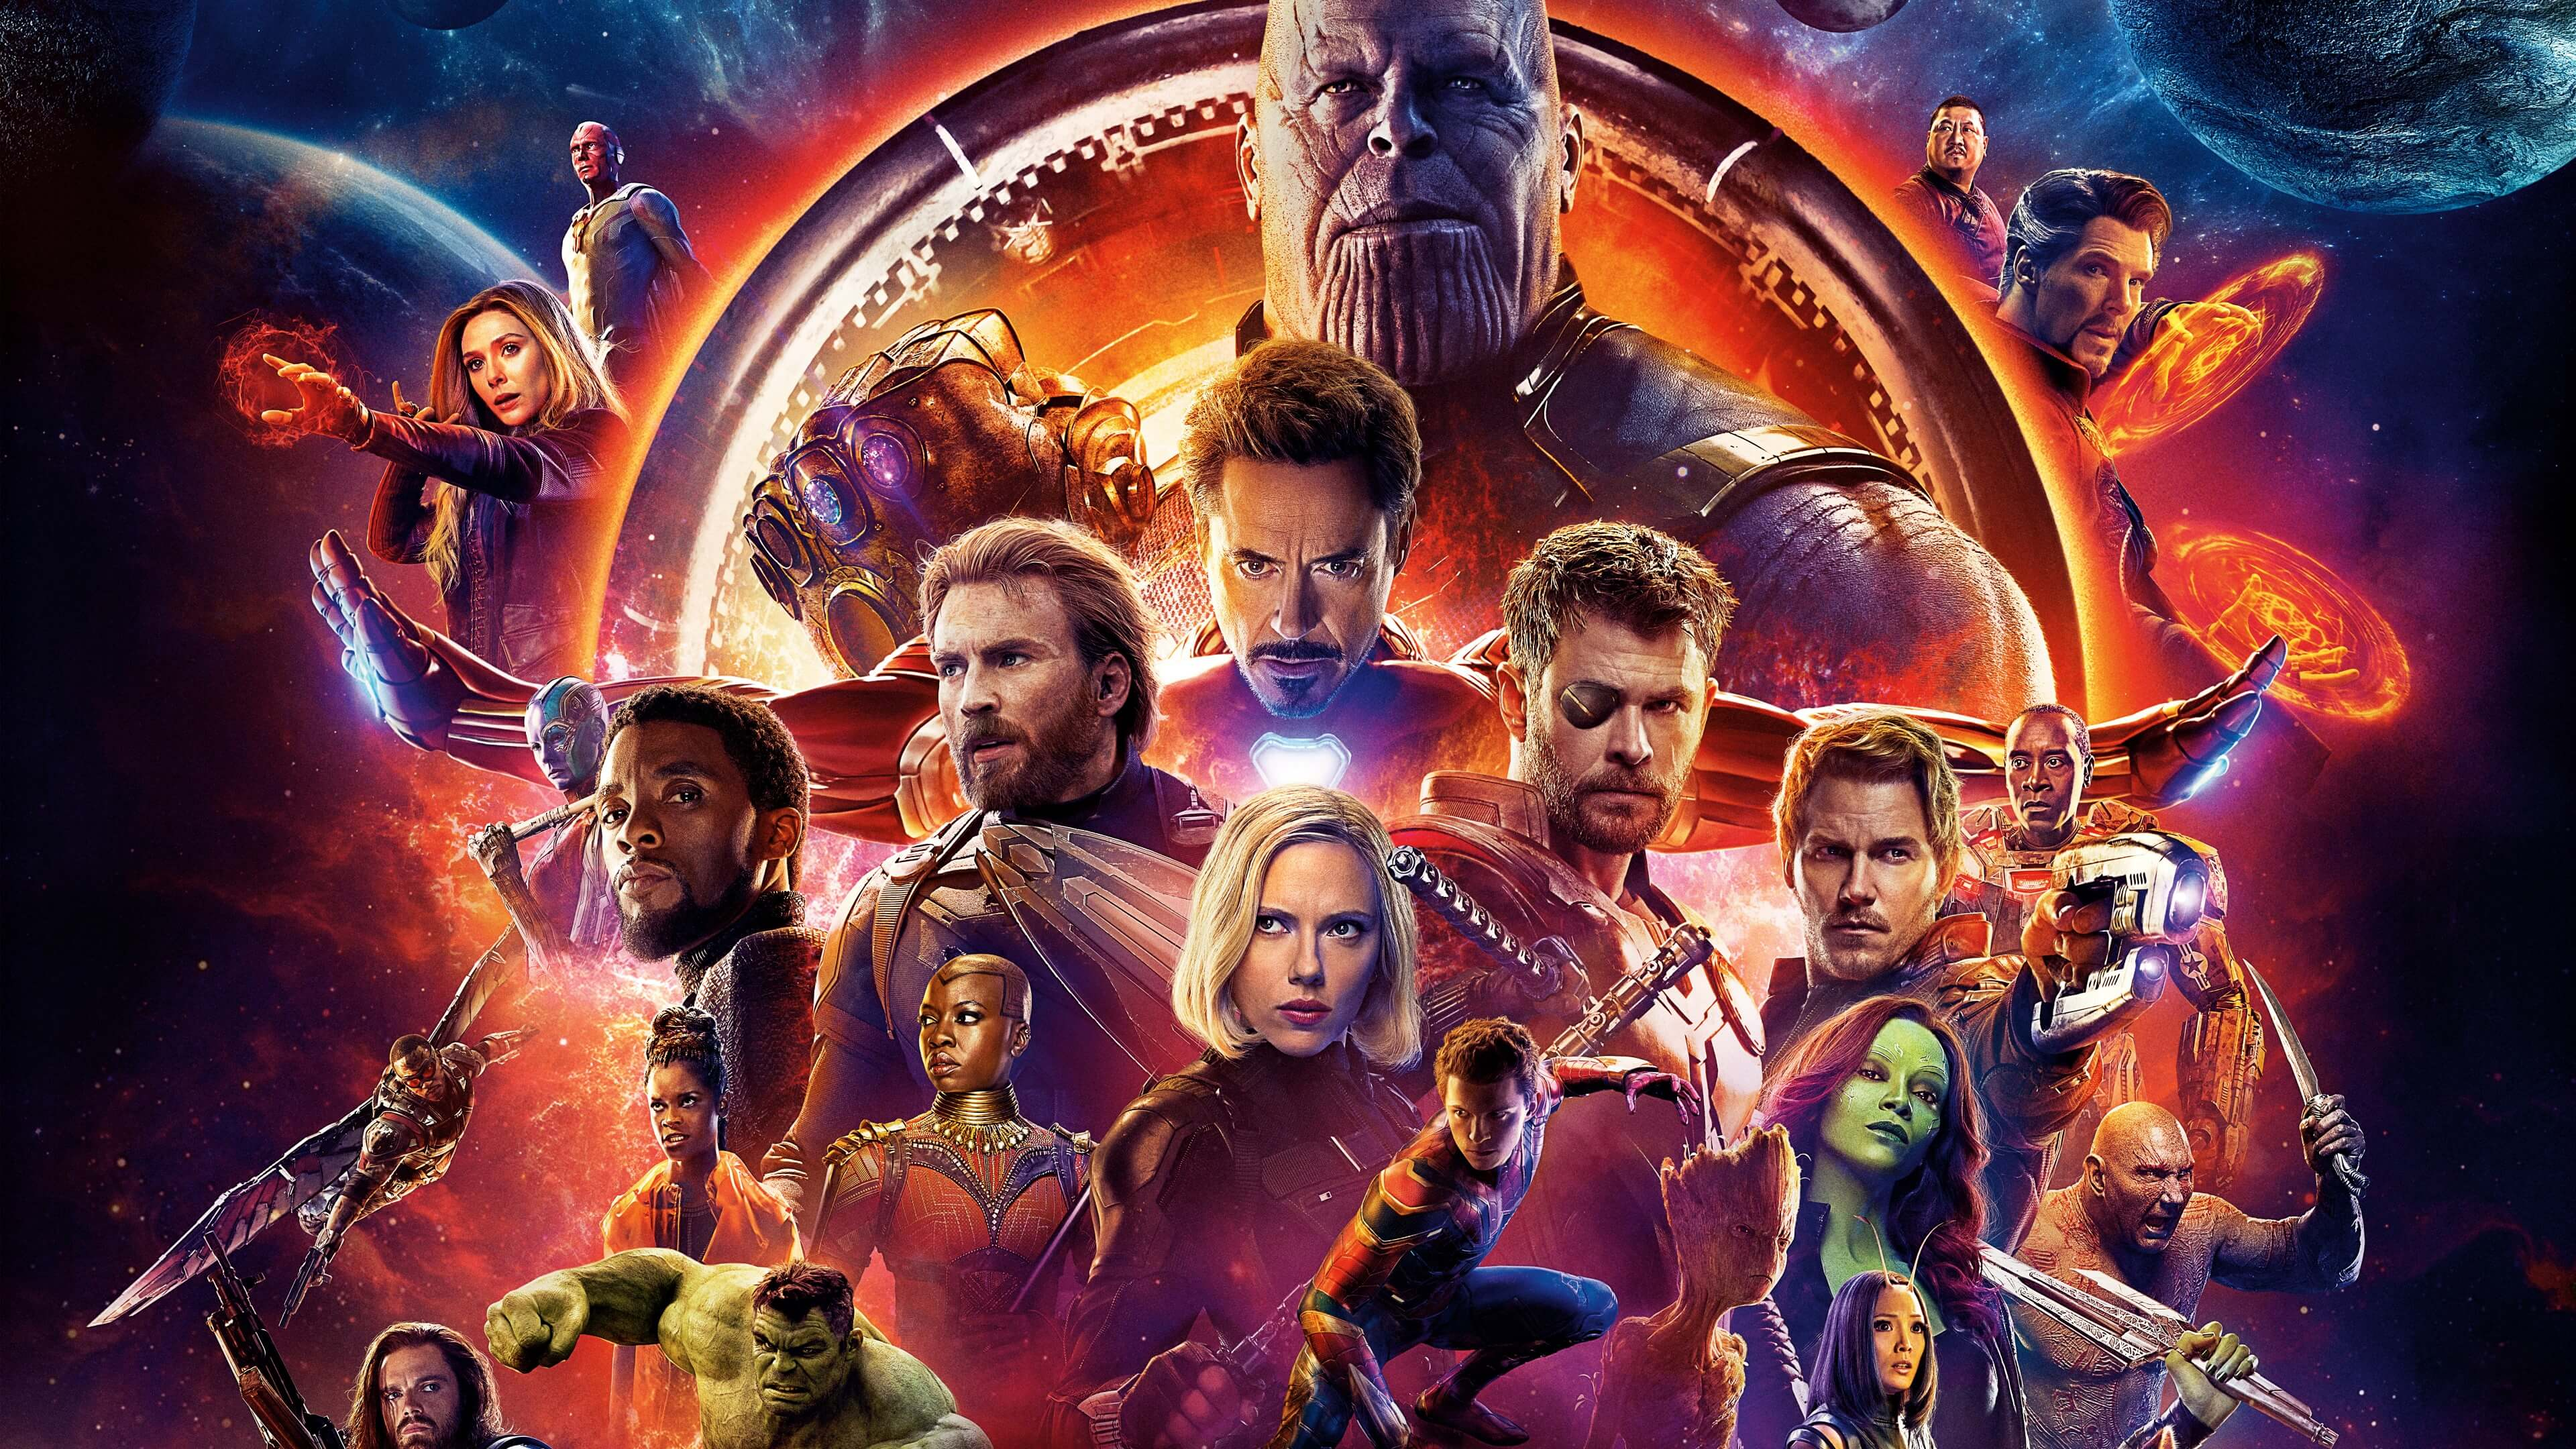 avengers infinity war movie wallpaper background hd 63587 3840x2160px